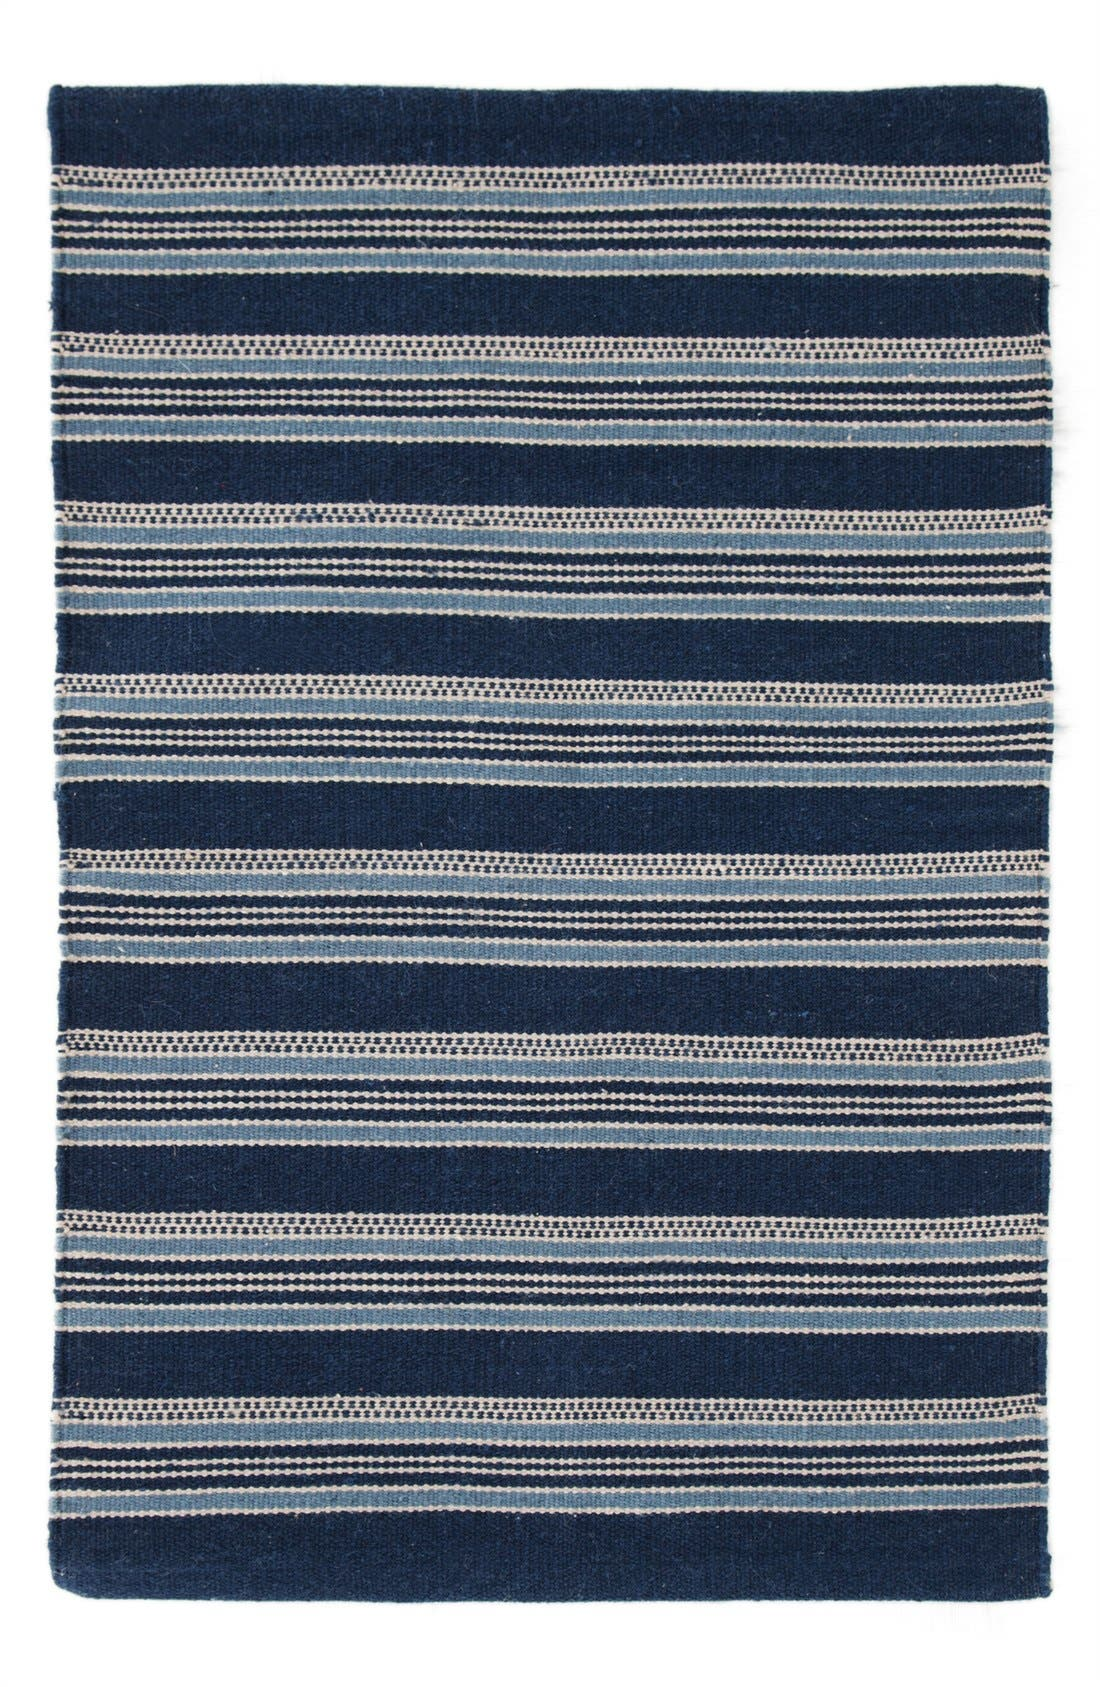 DASH & ALBERT 'Cameroon' Indoor/Outdoor Rug